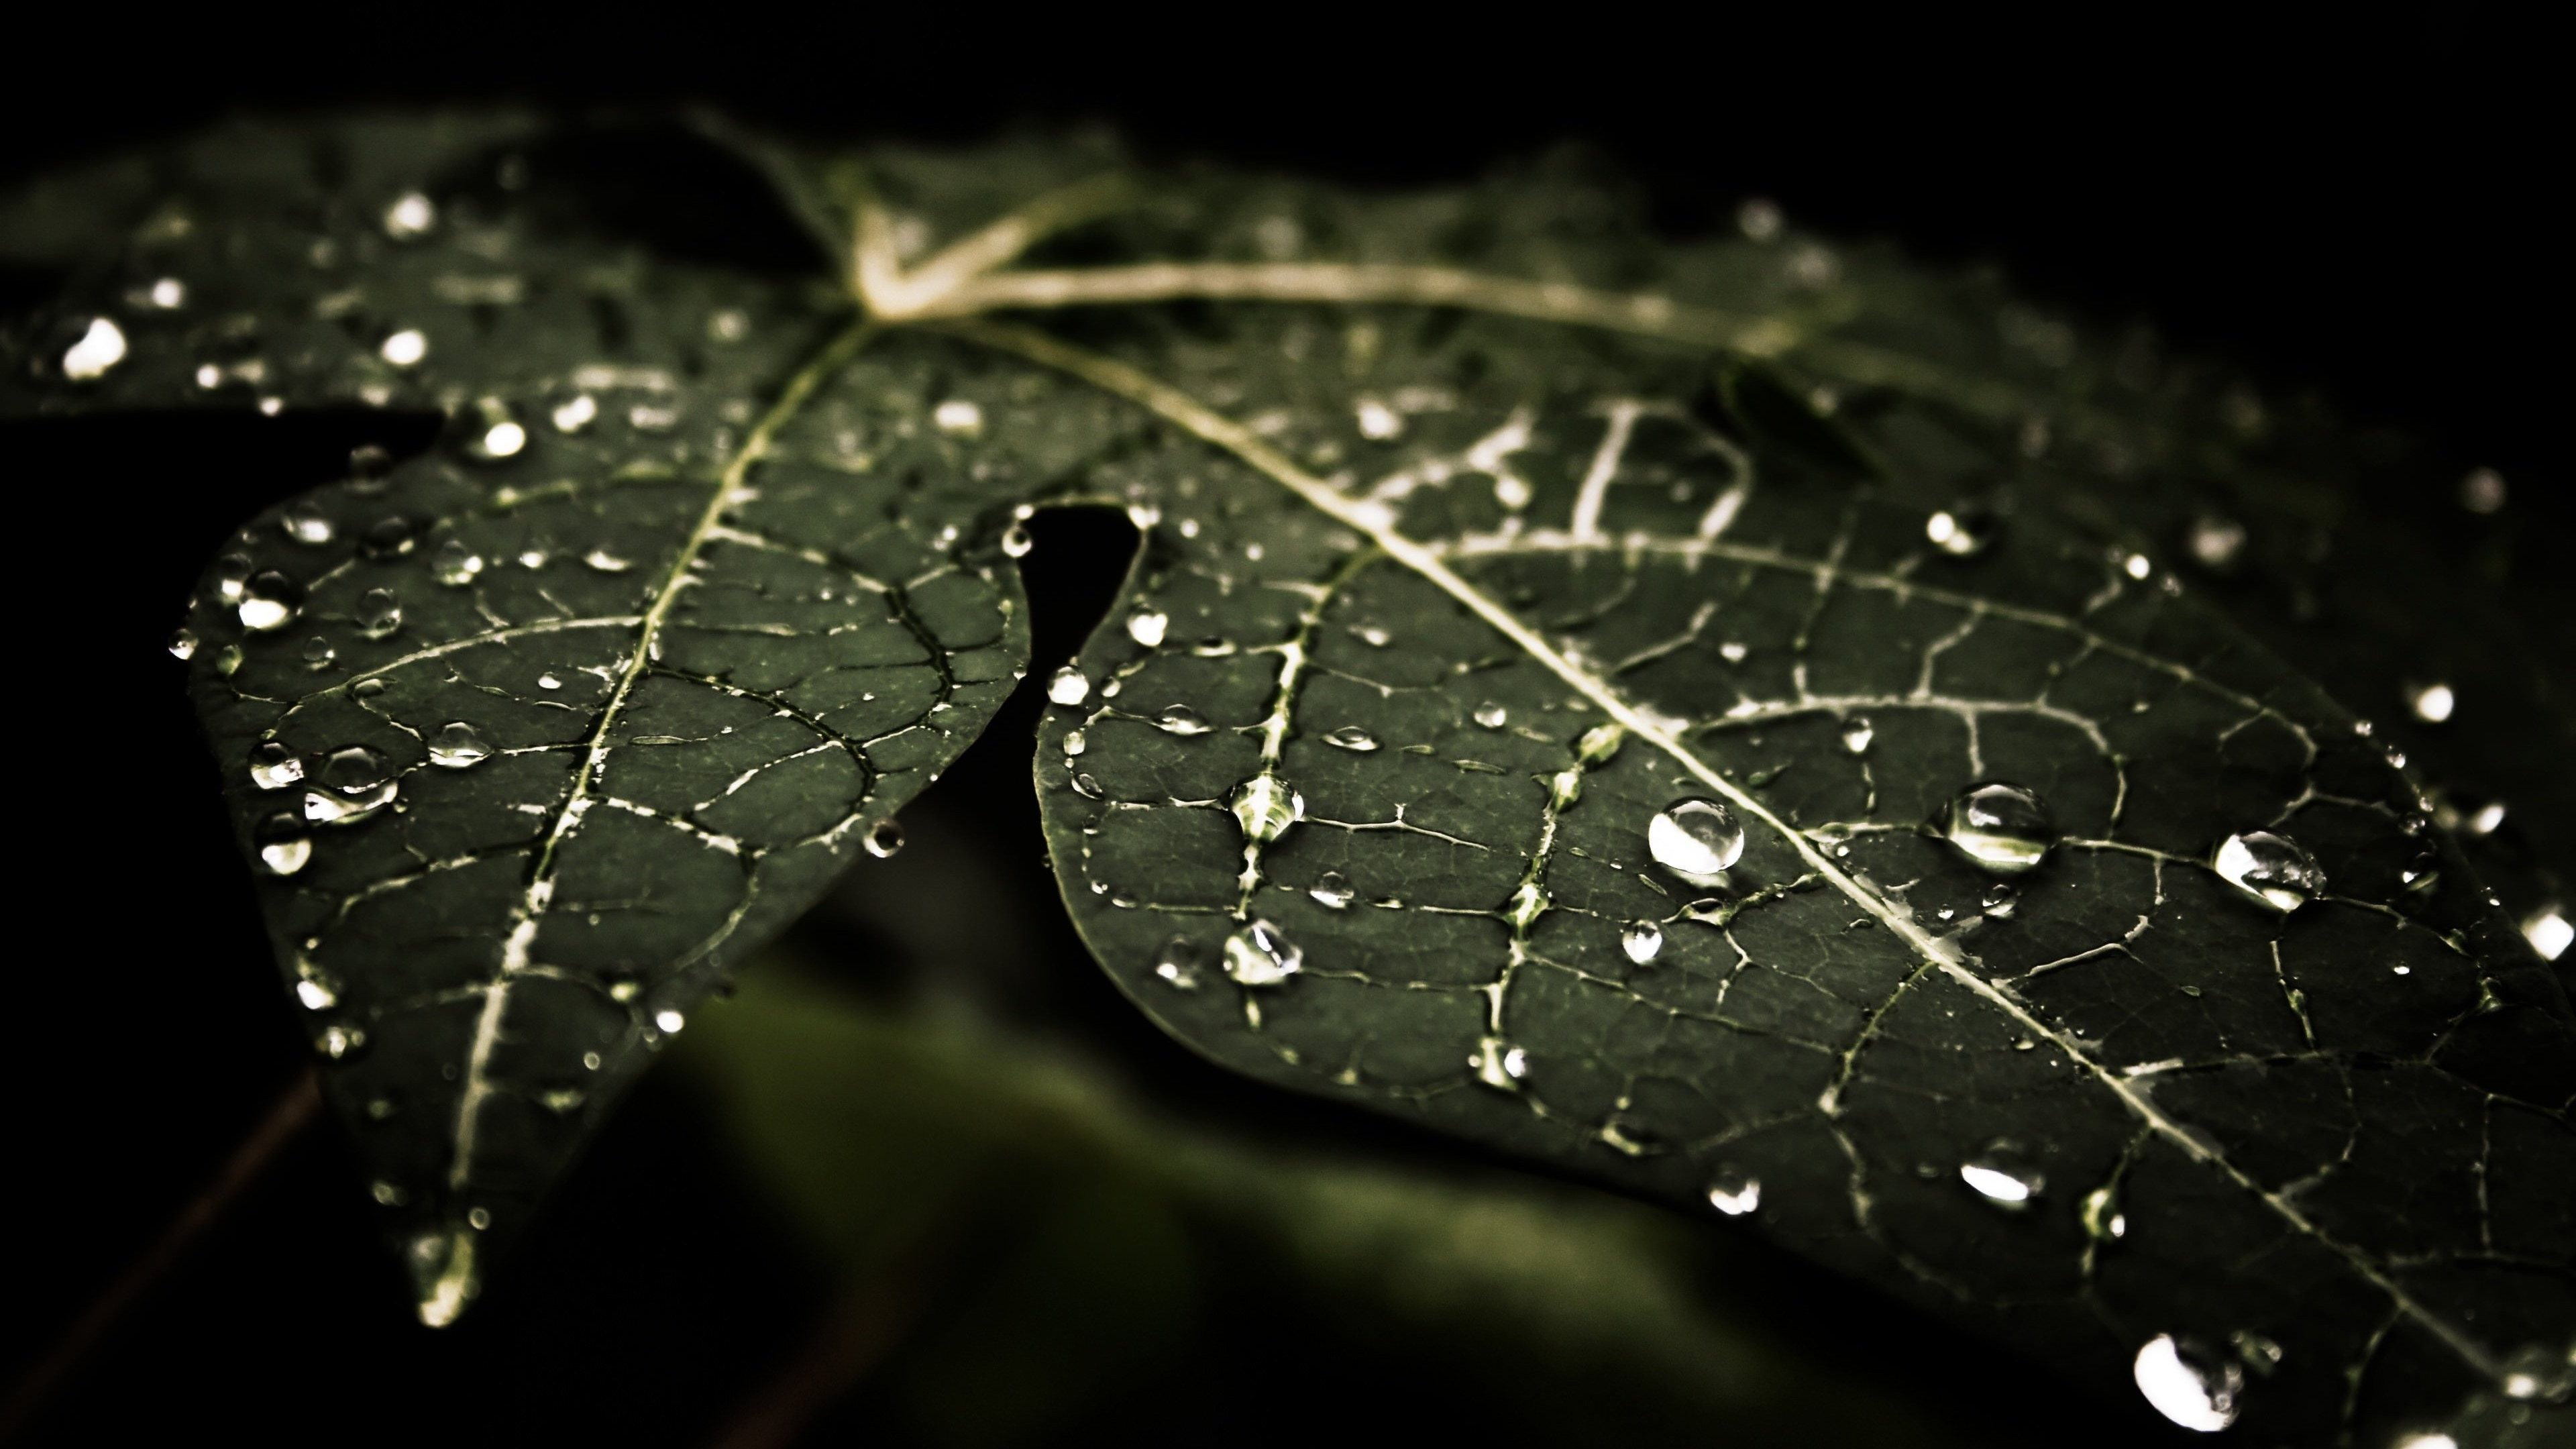 Droplets On Leaves Wallpaper for Desktop 4K 3840x2160